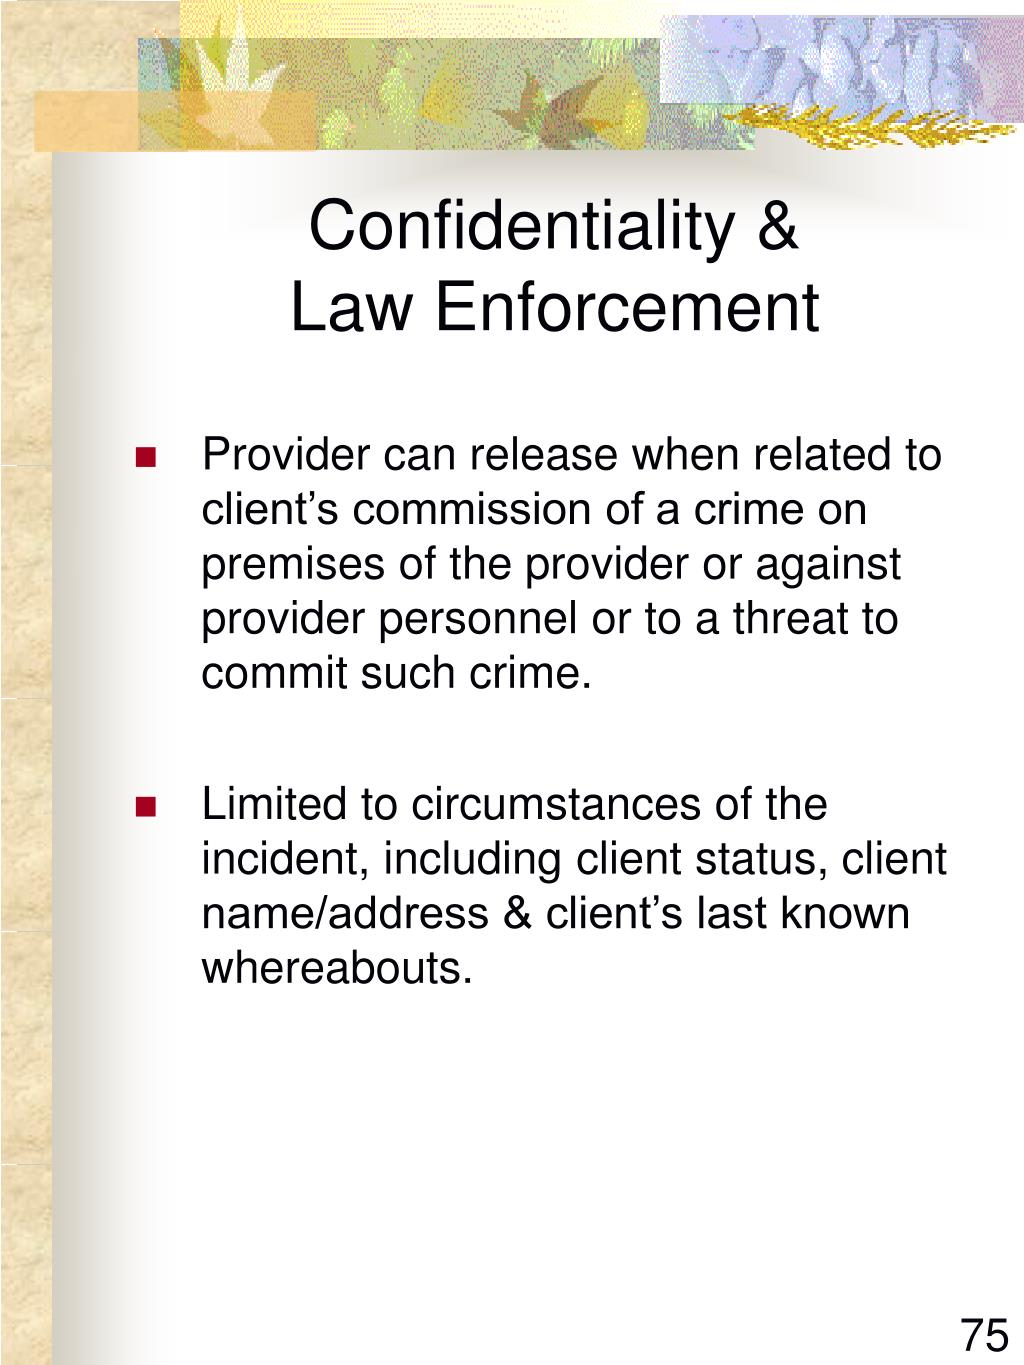 Confidentiality &